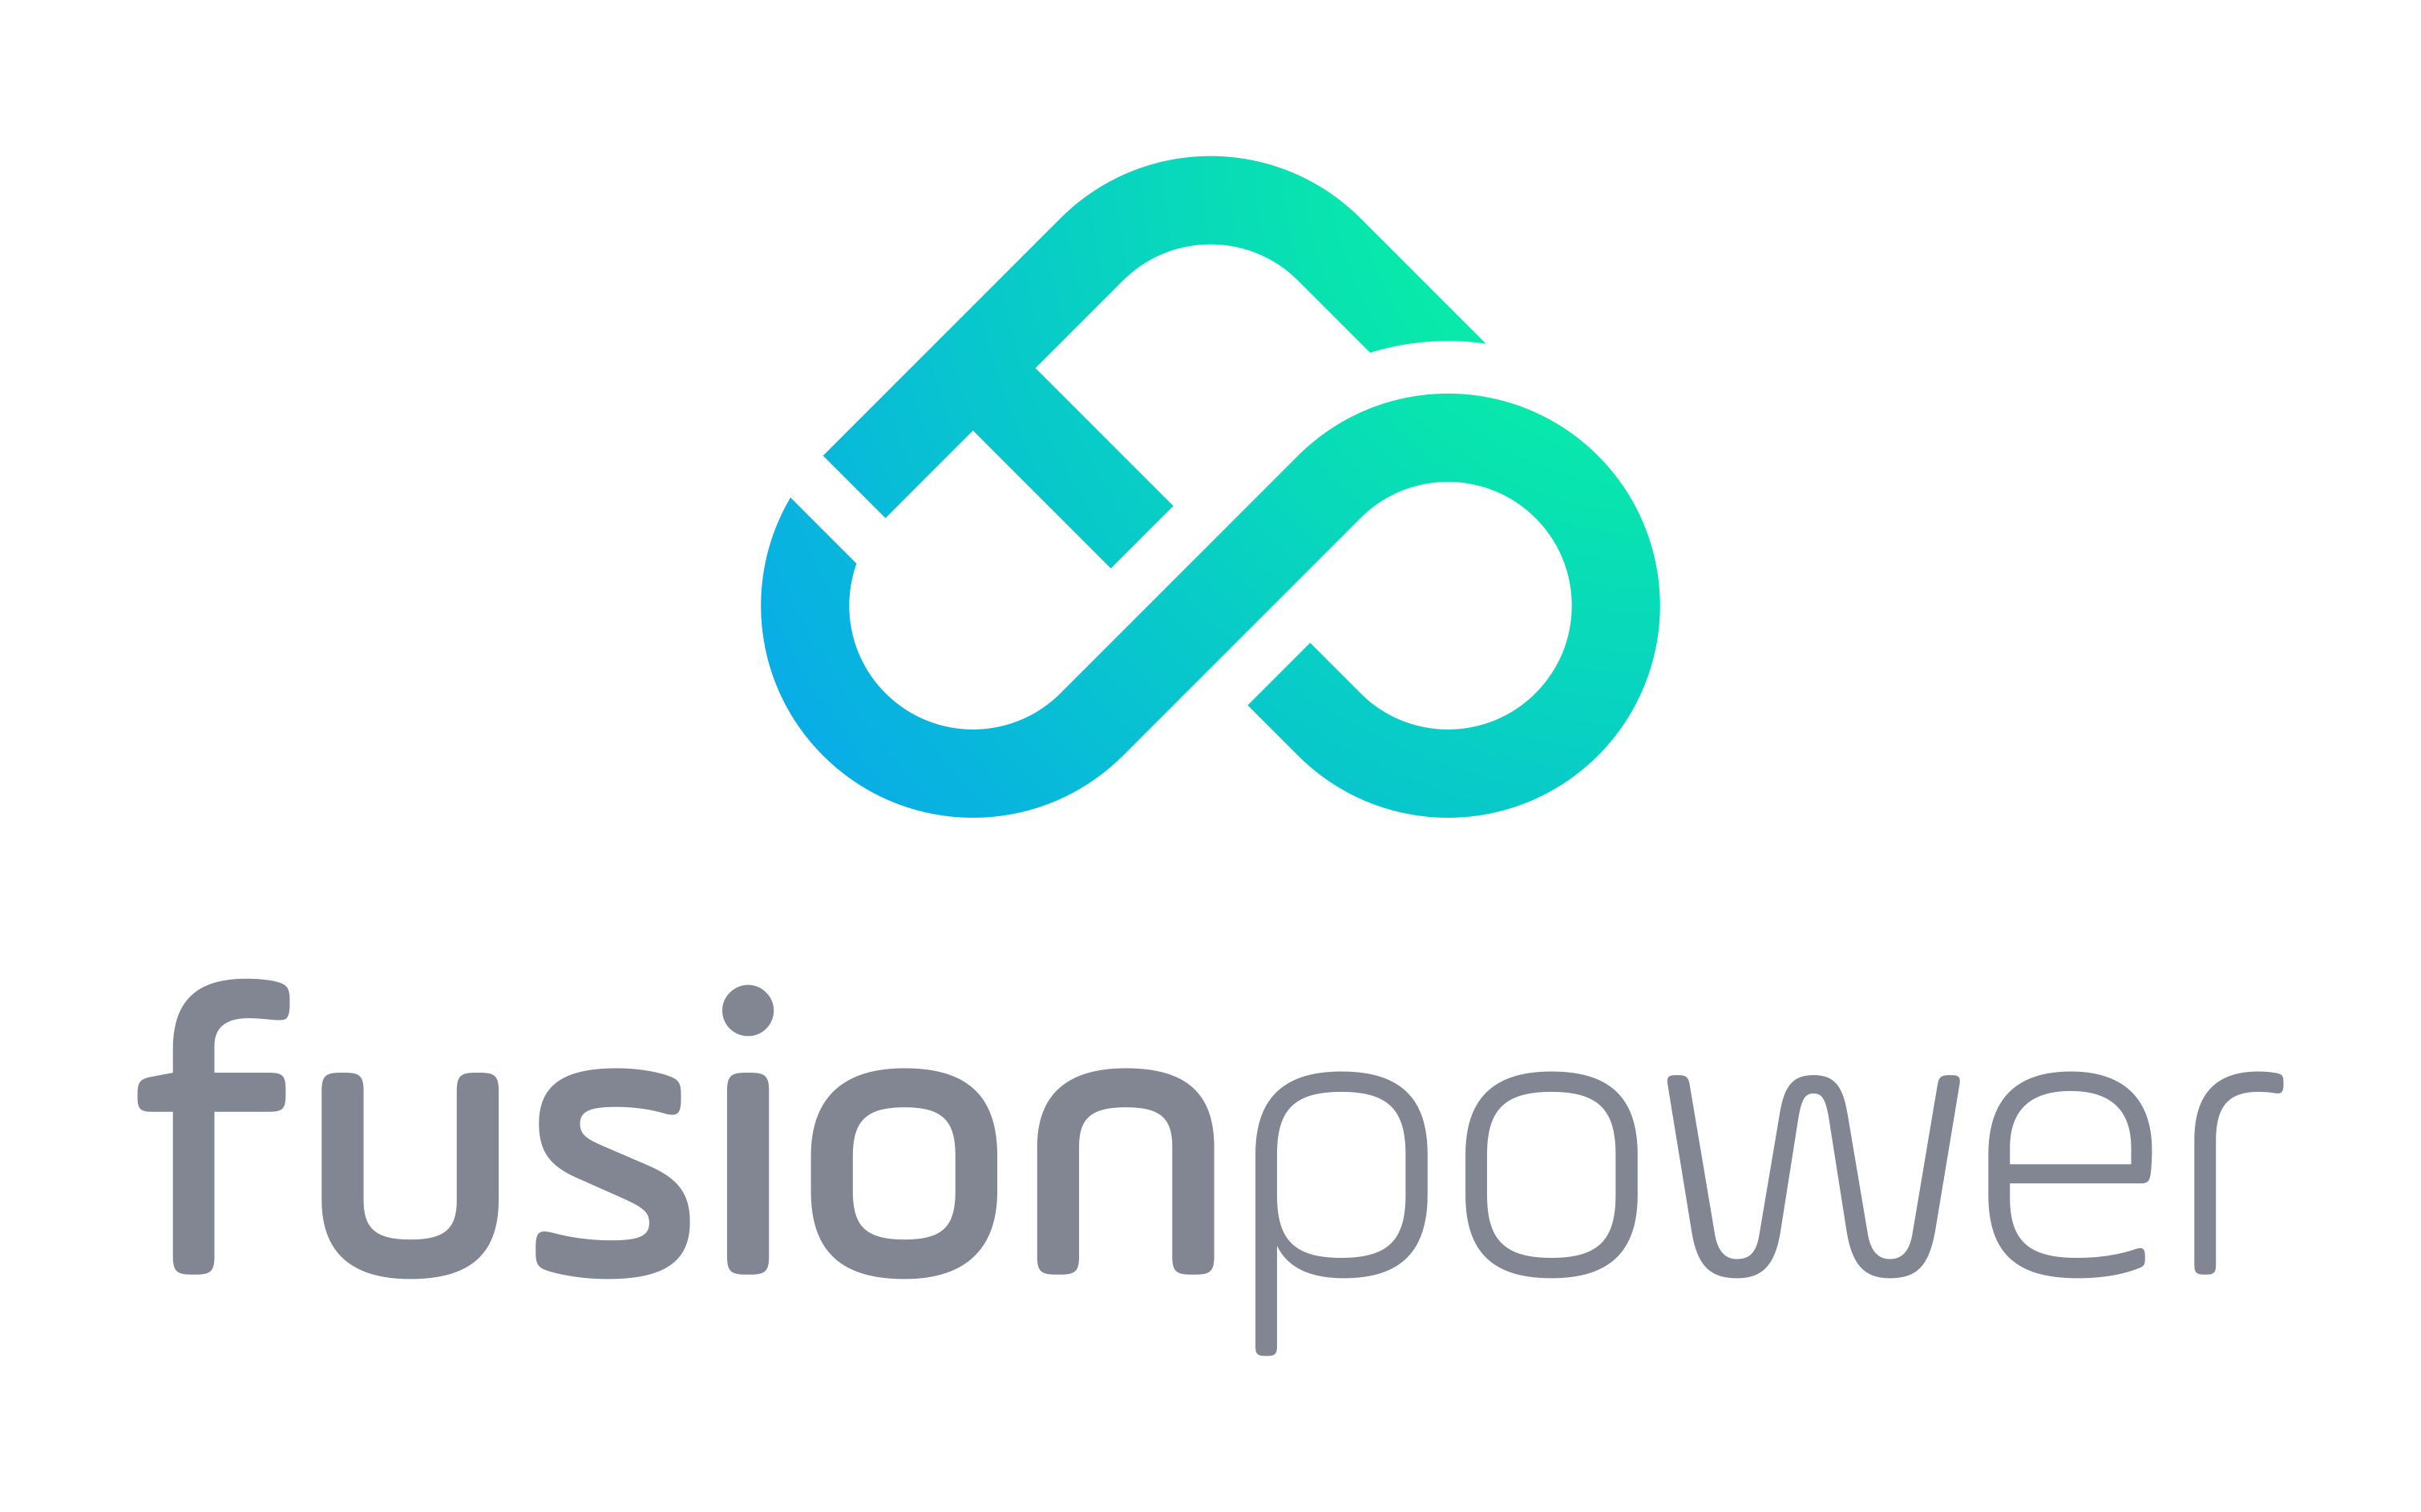 Powerful Logo needed for our Sales Team Fusion Power!